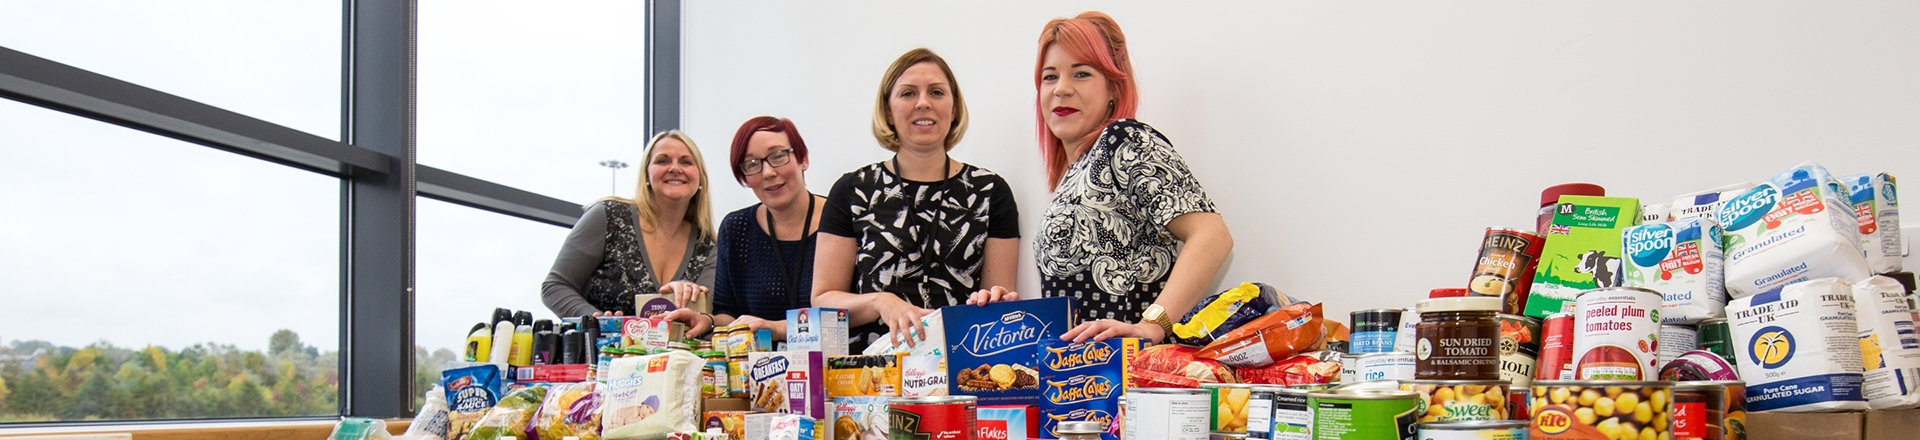 Staff collecting for local food banks